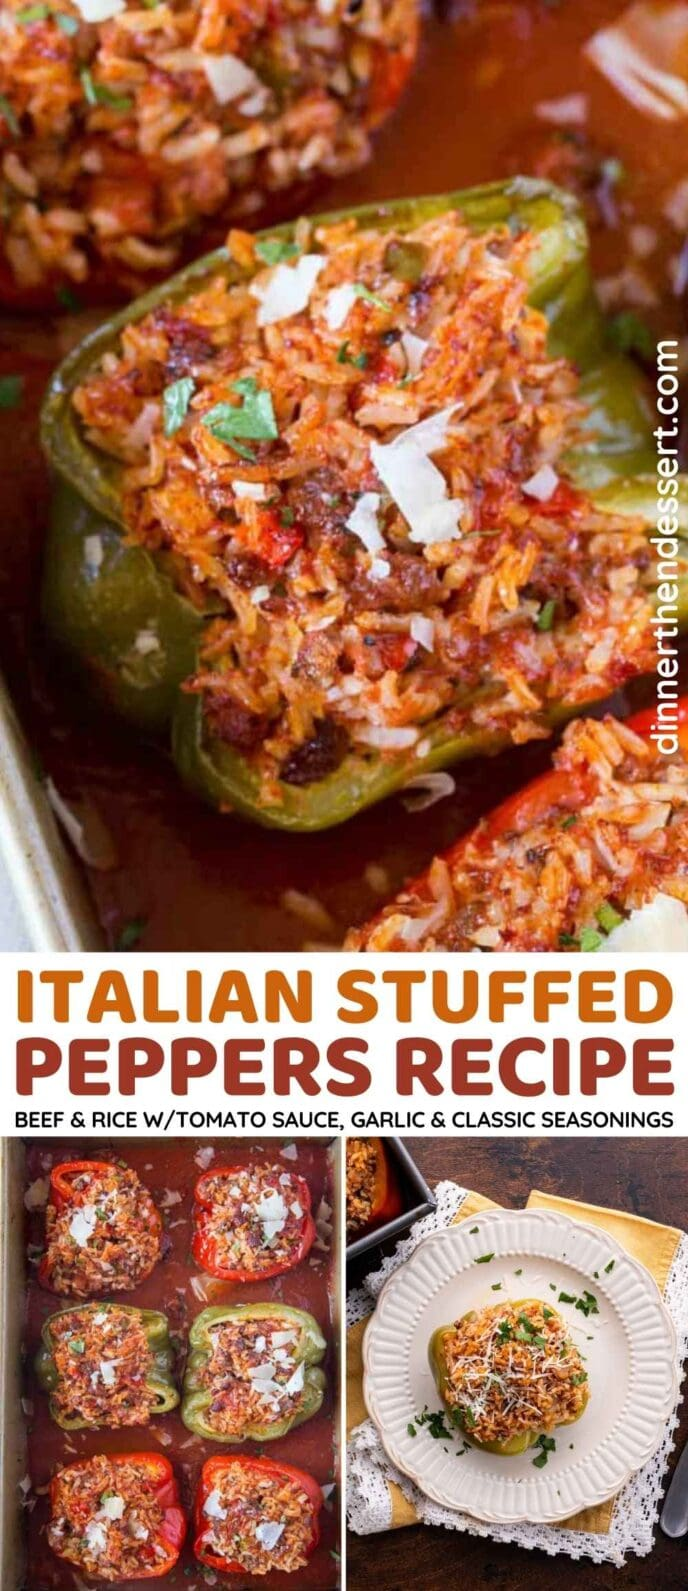 Stuffed Peppers Collage